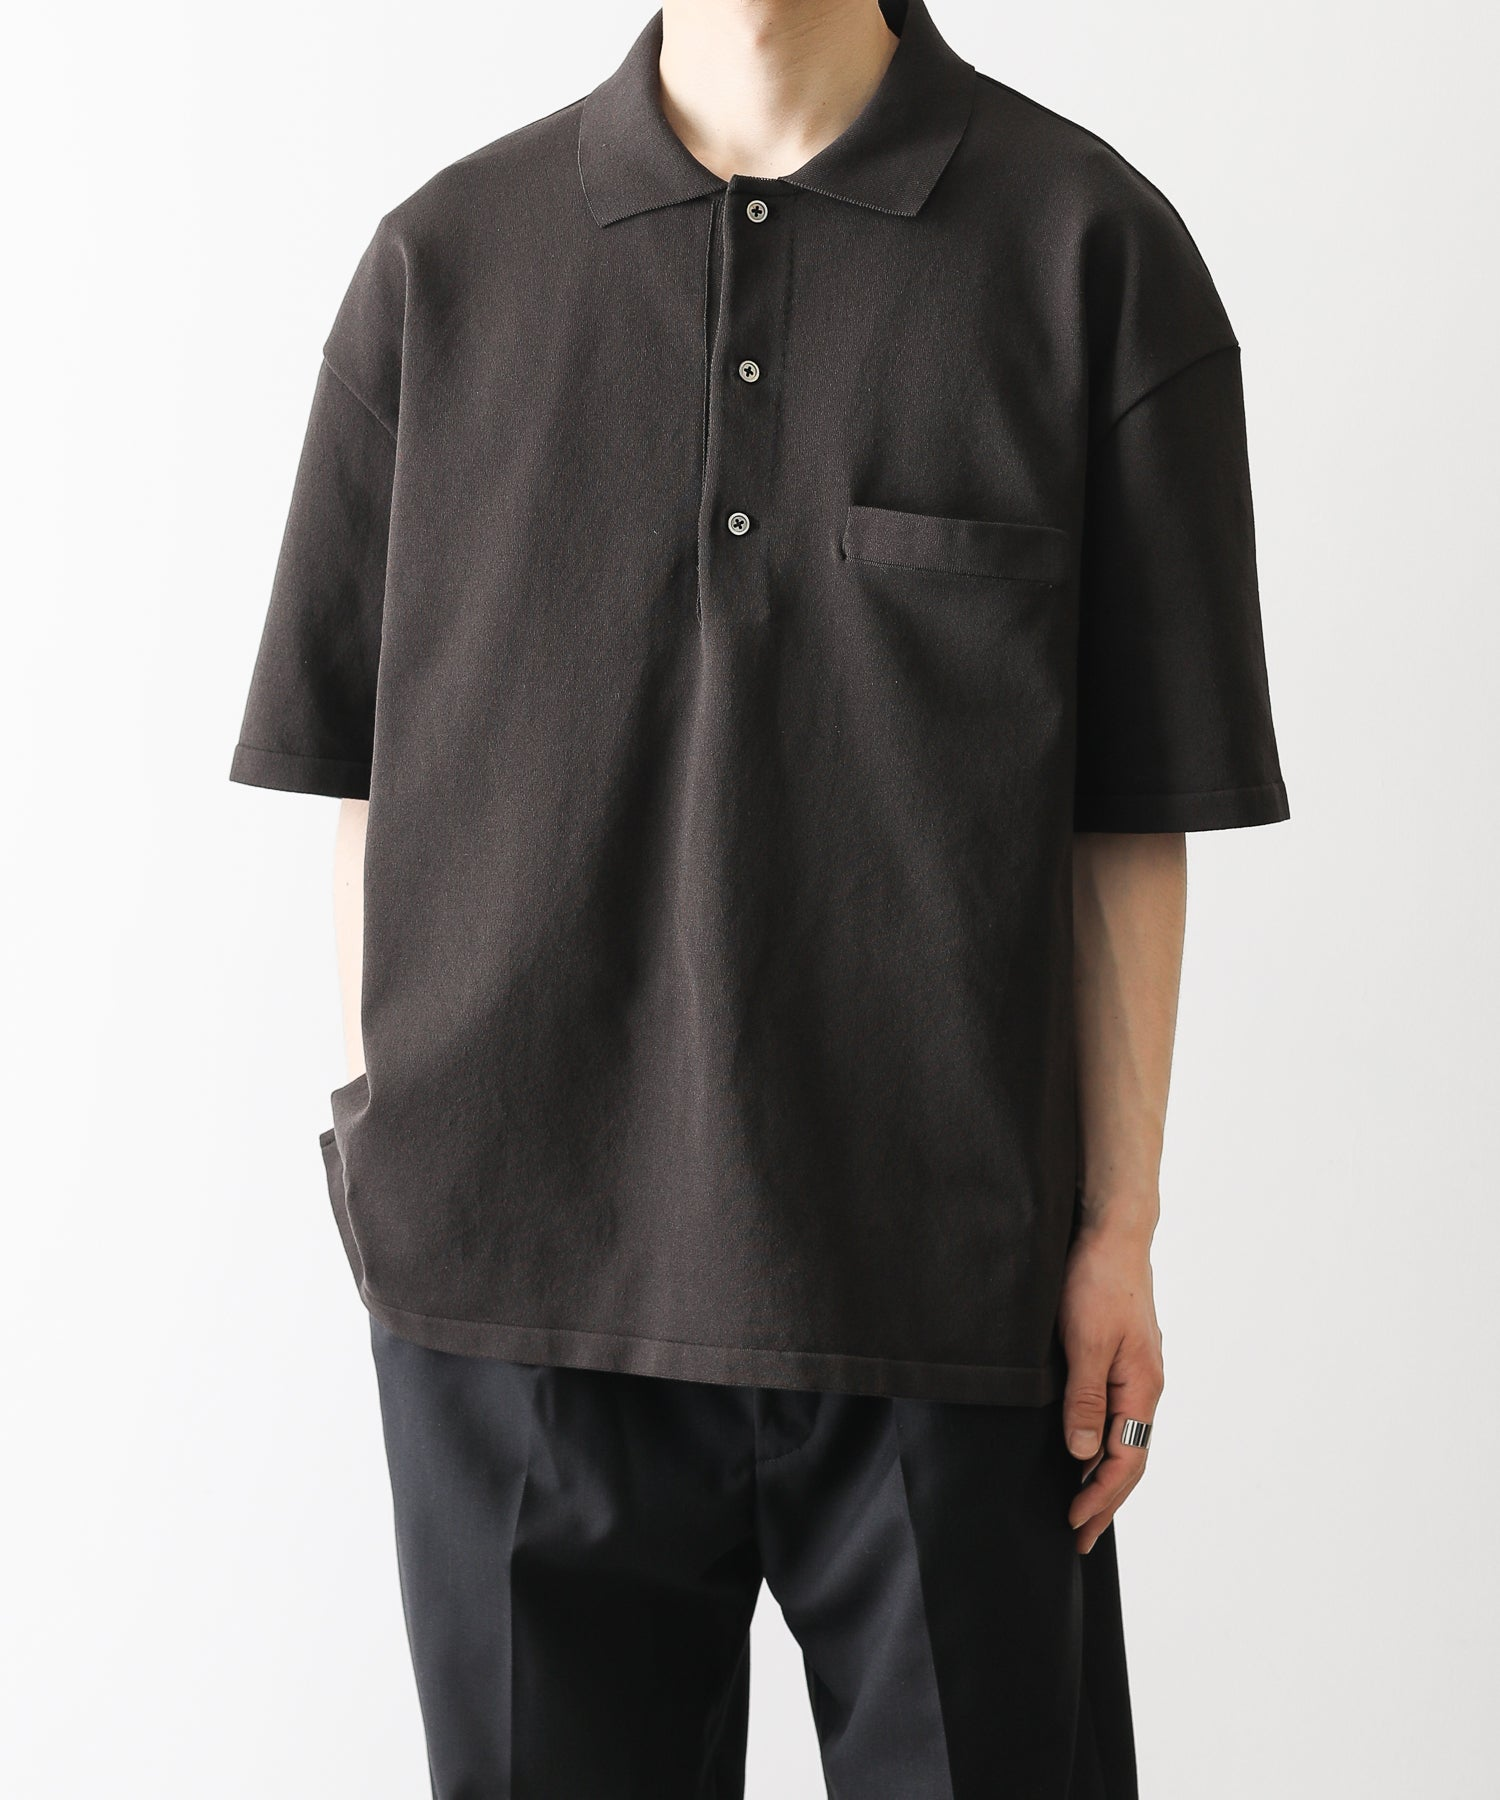 【stein】HIGHLY DENSED KNIT POLO SHIRTS